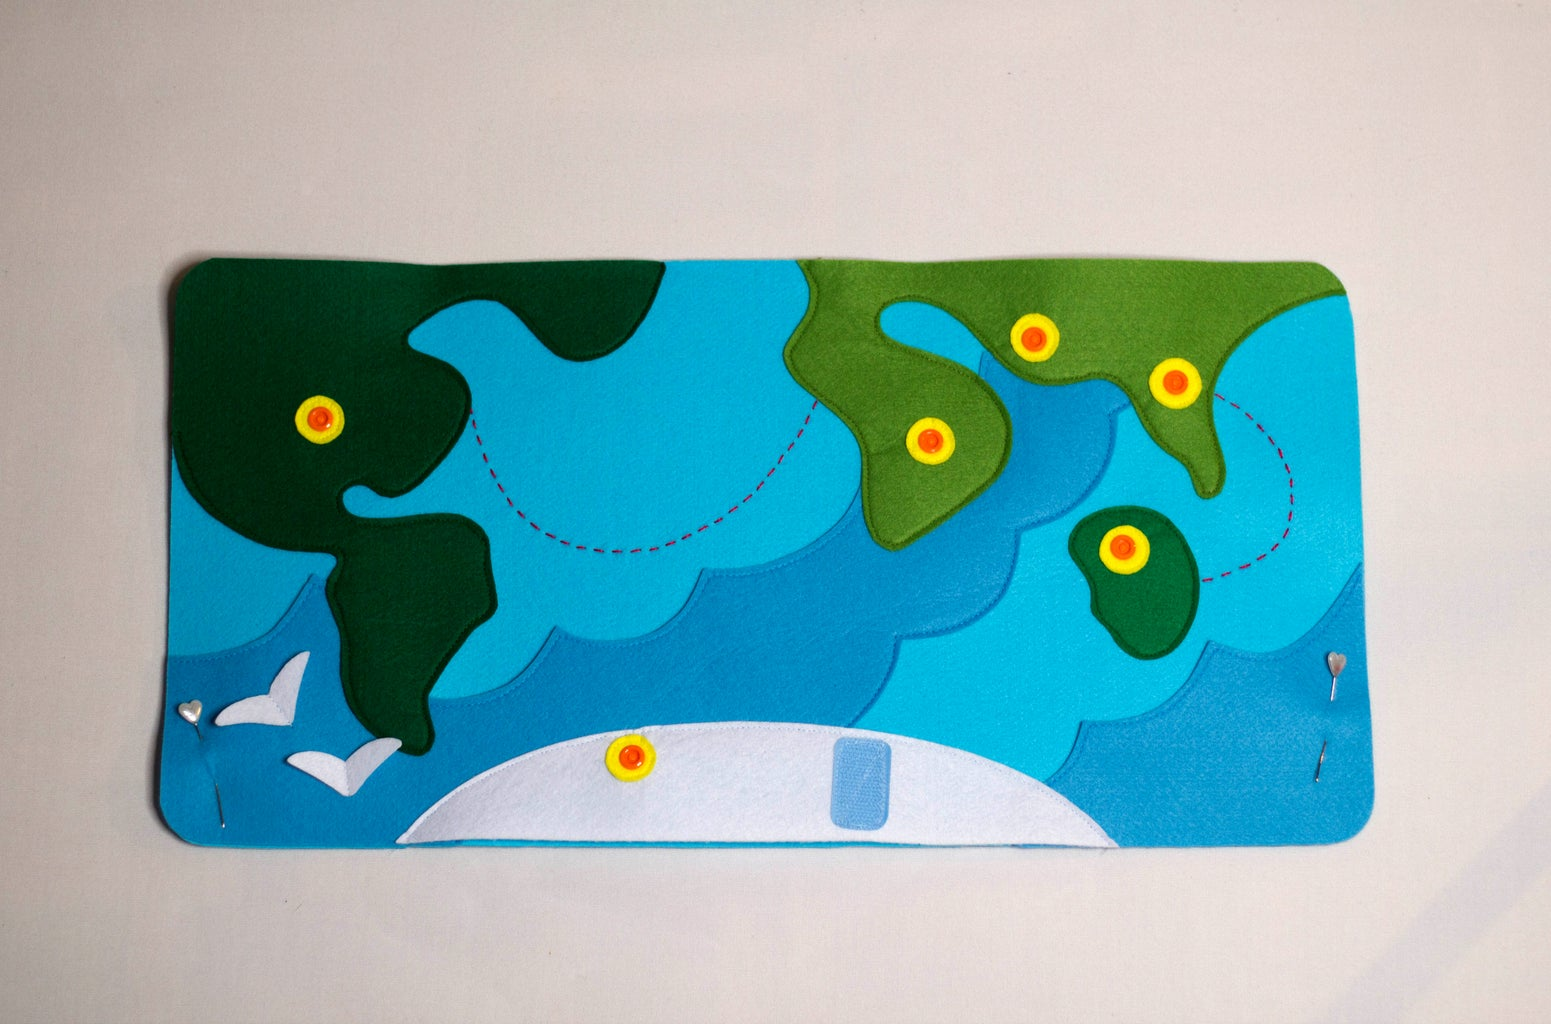 Sew Continents Into the Base